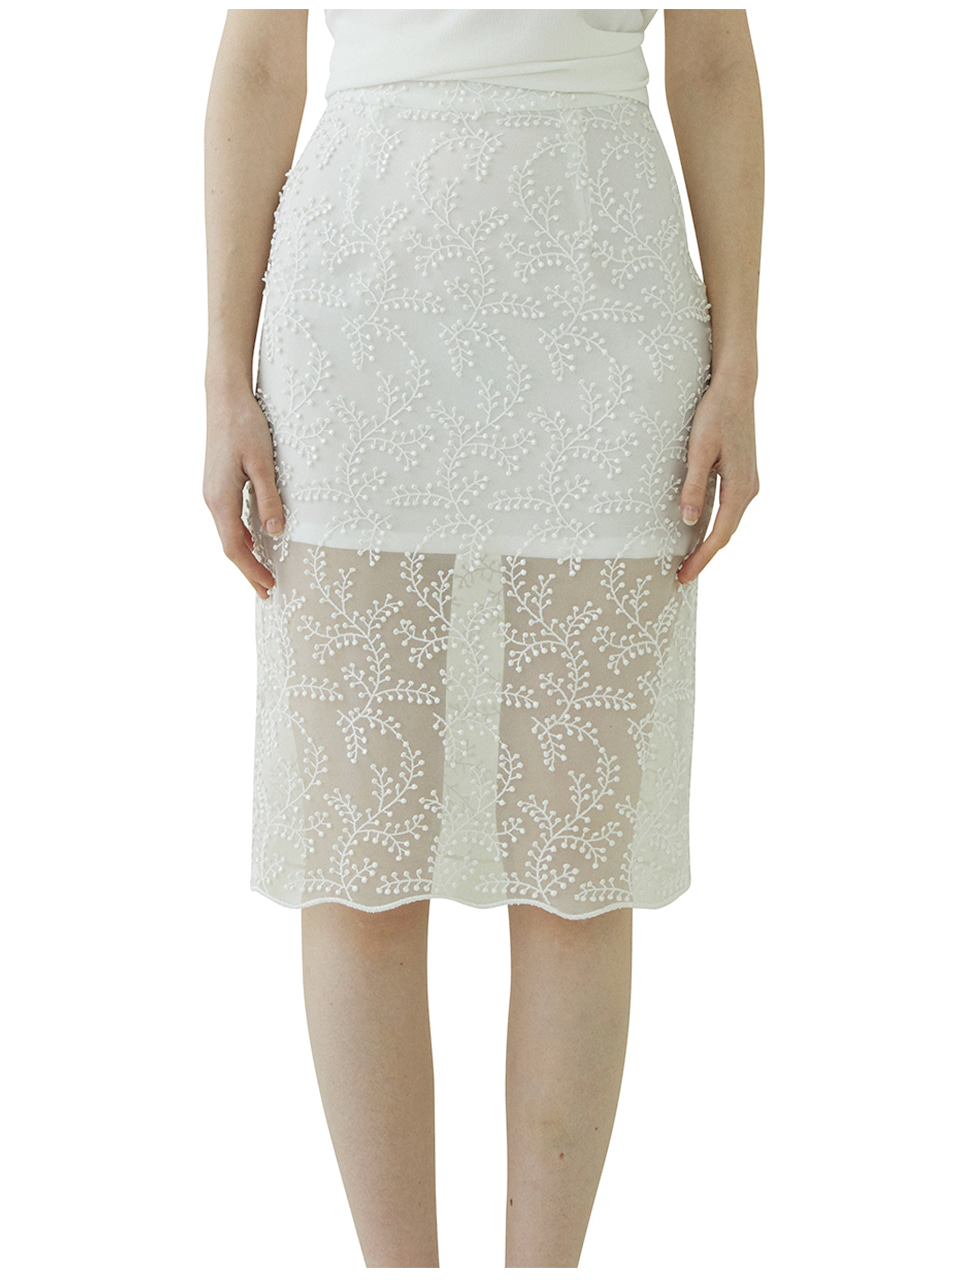 Bell Laced Long Skirt - ivory